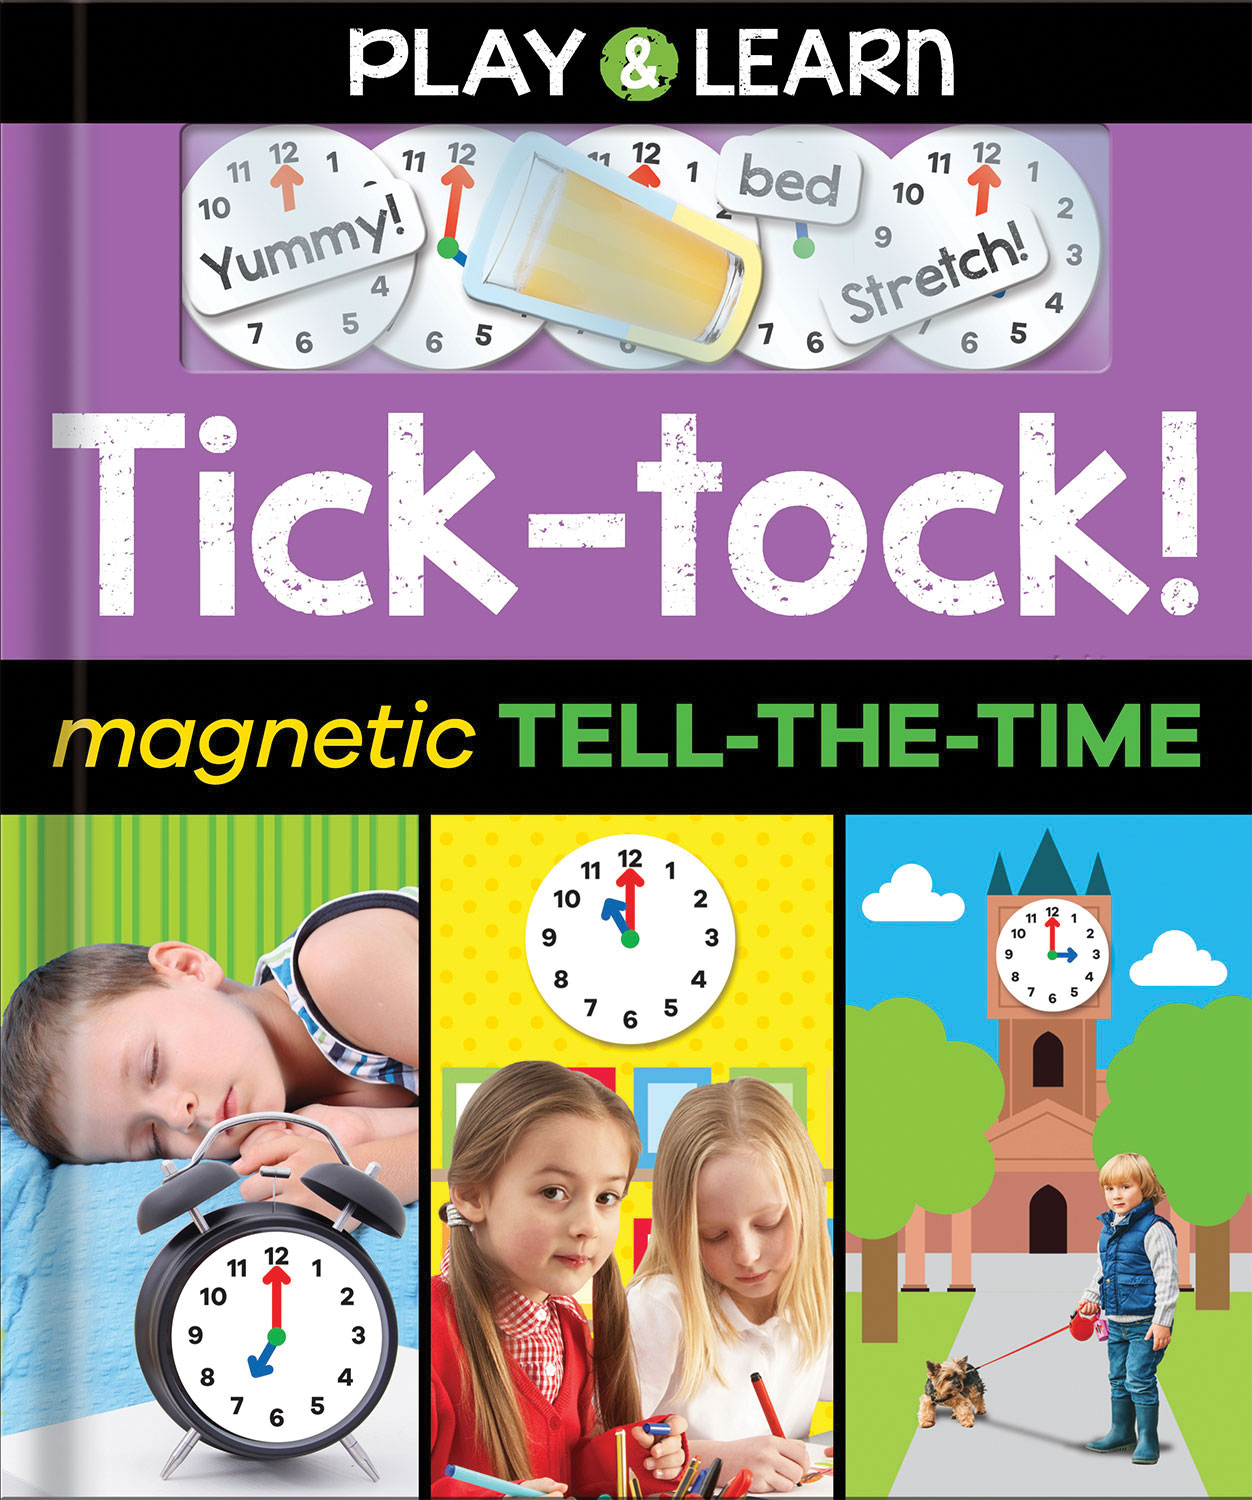 TICK-TOCK! MAGNETIC TELL-THE-TIME